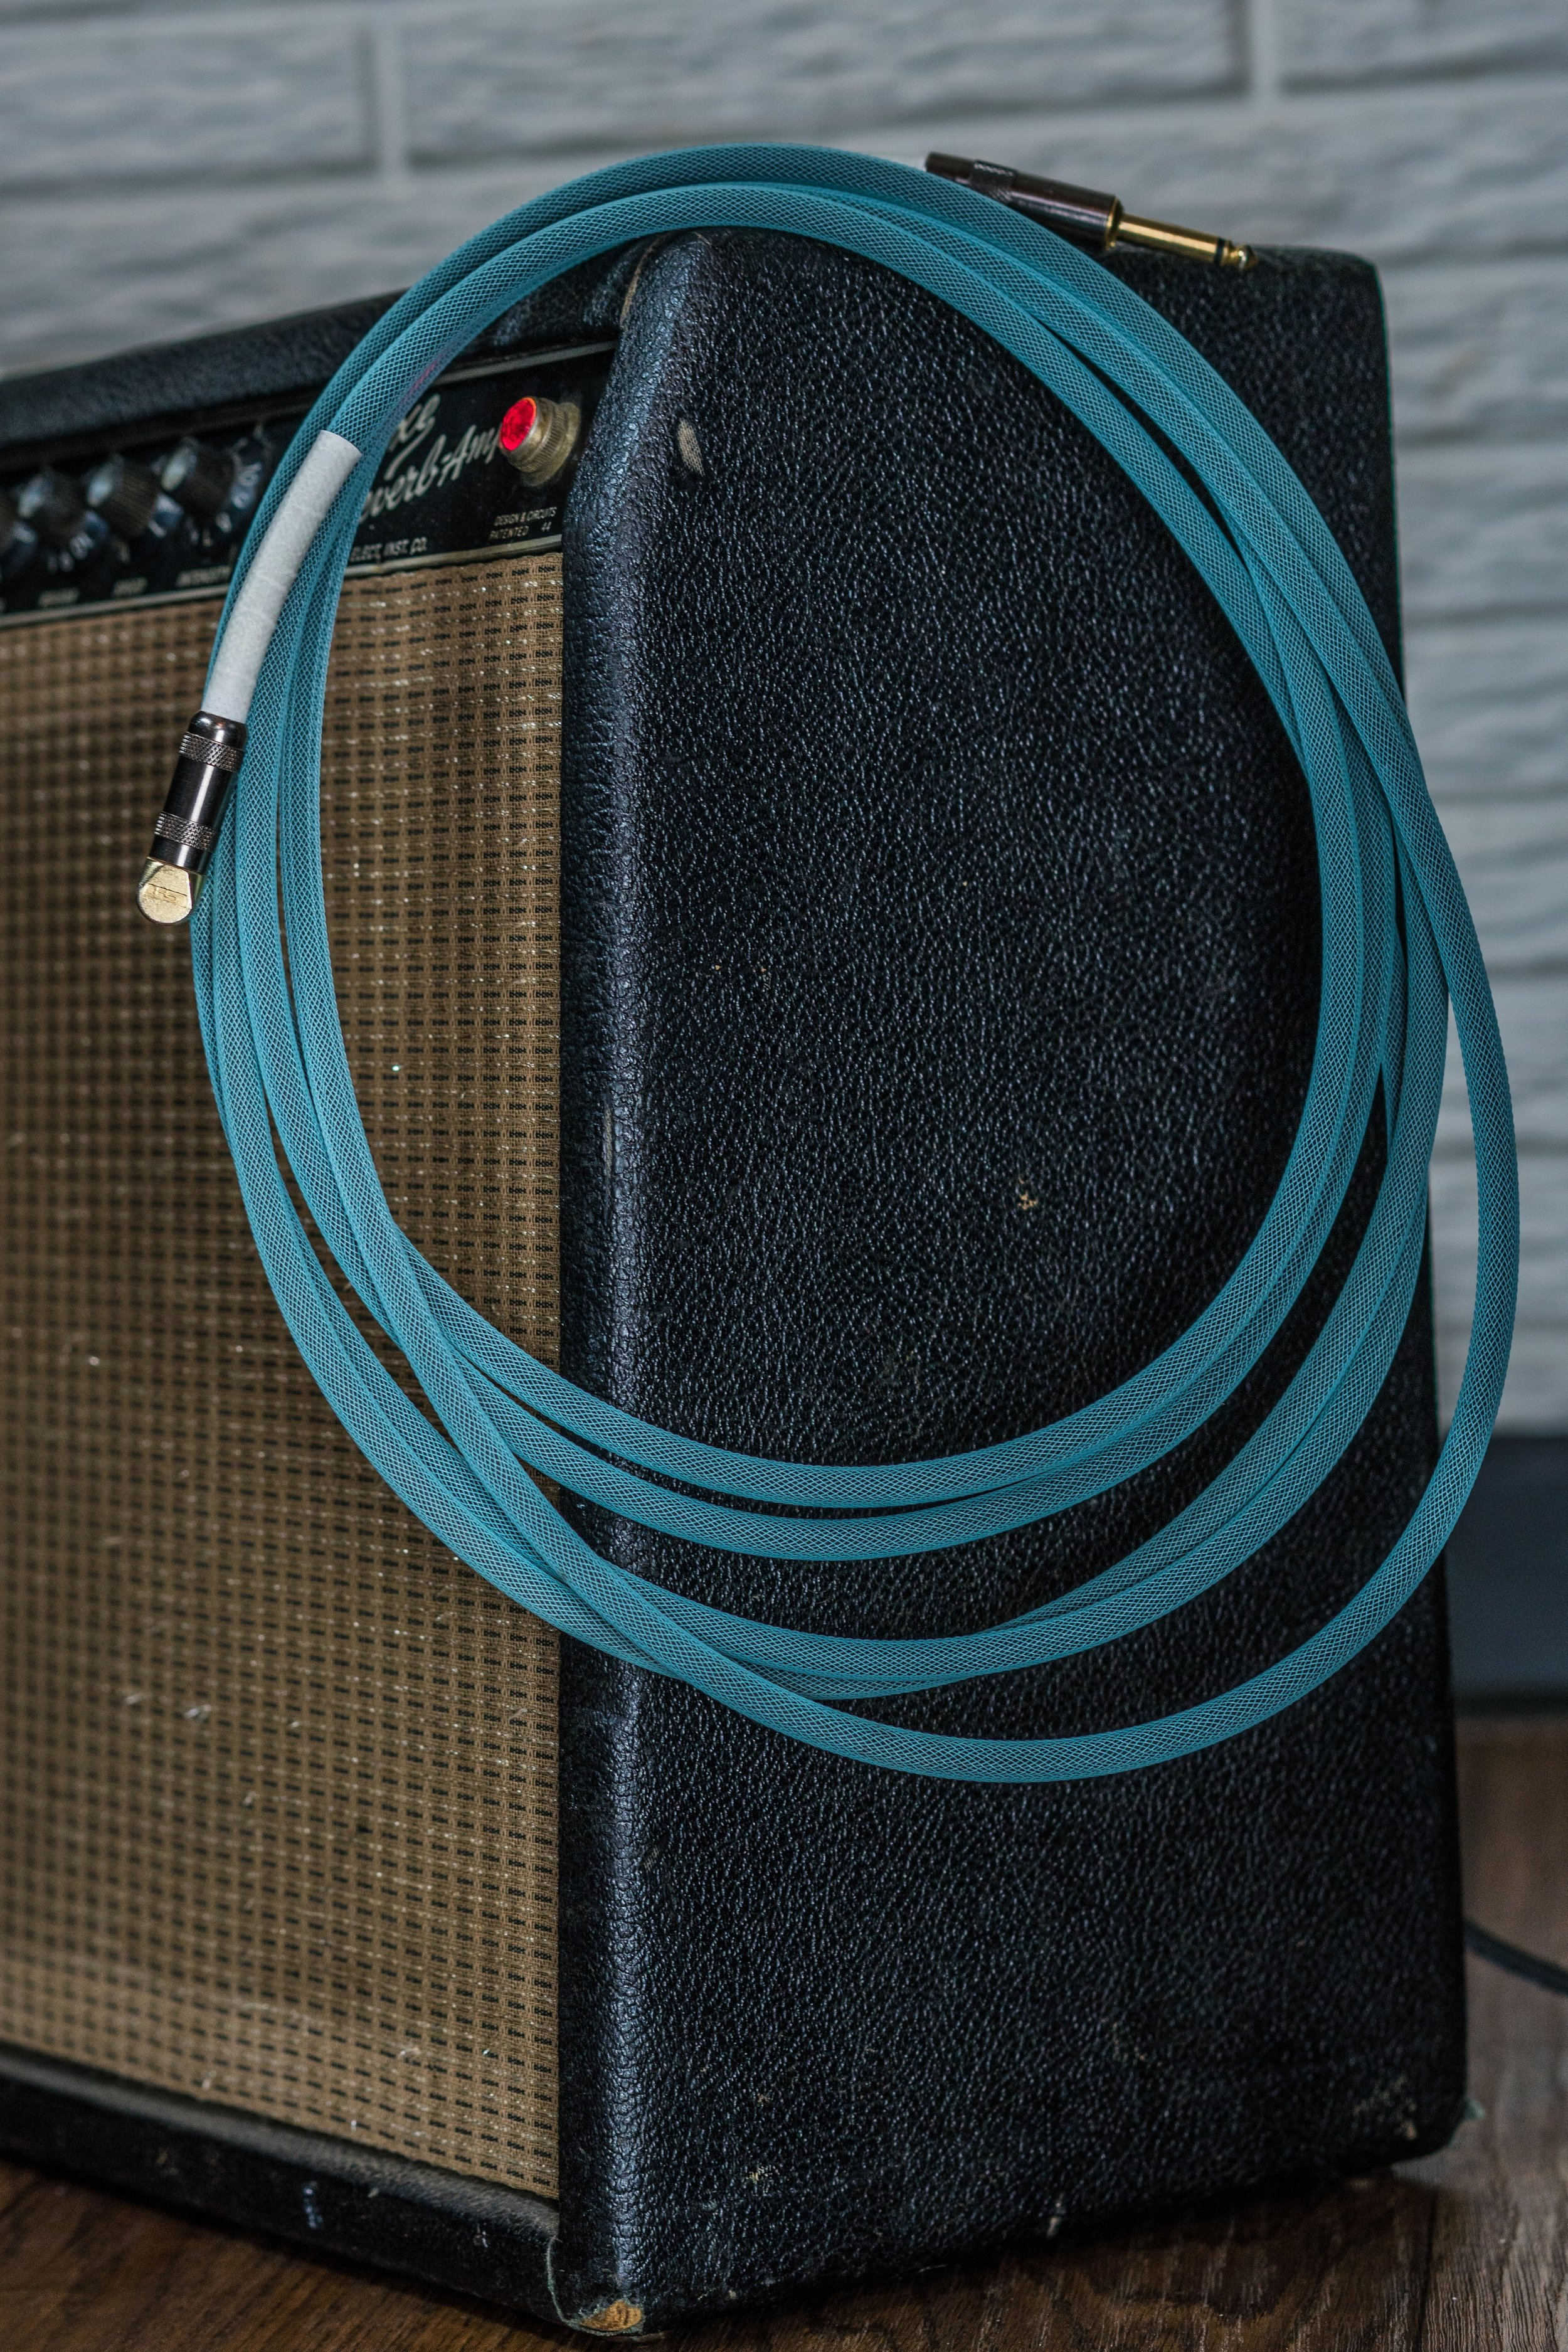 guitar cable small.jpg